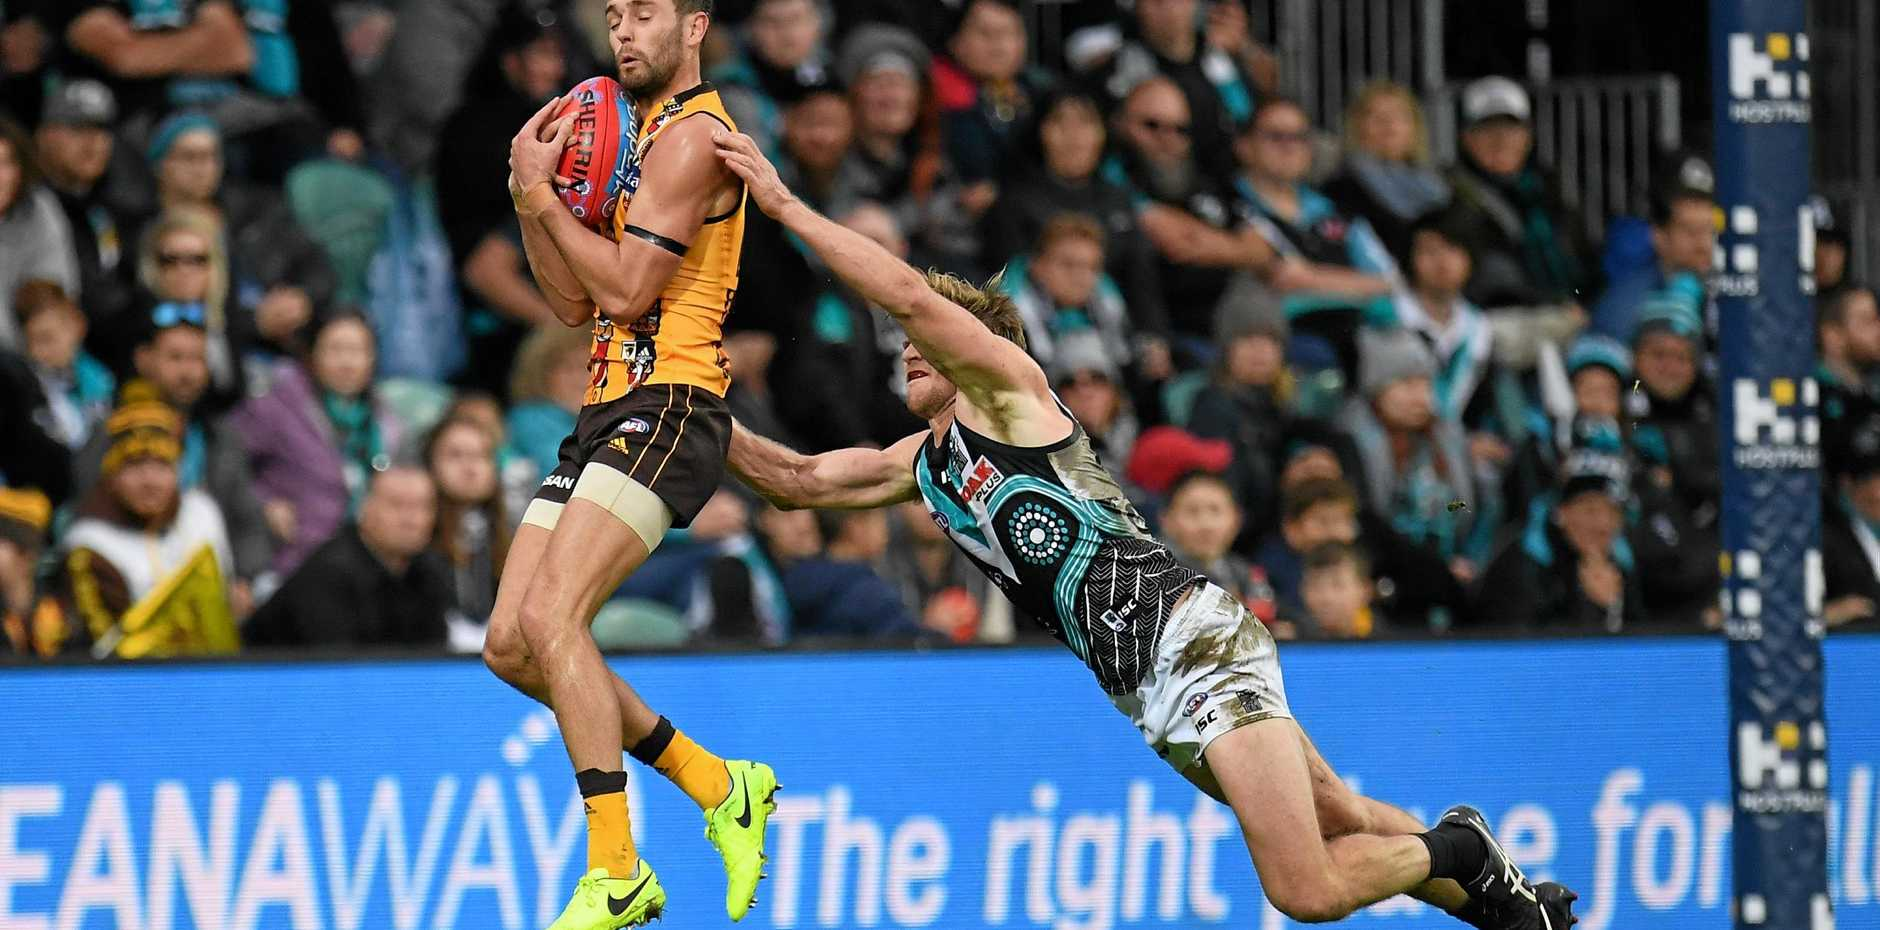 Hawthorn's Jack Gunston marks in front of Port Adelaide's Tom Jonas at the University of Tasmania Stadium, Launceston on Saturday. Picture: Julian Smith/AAP